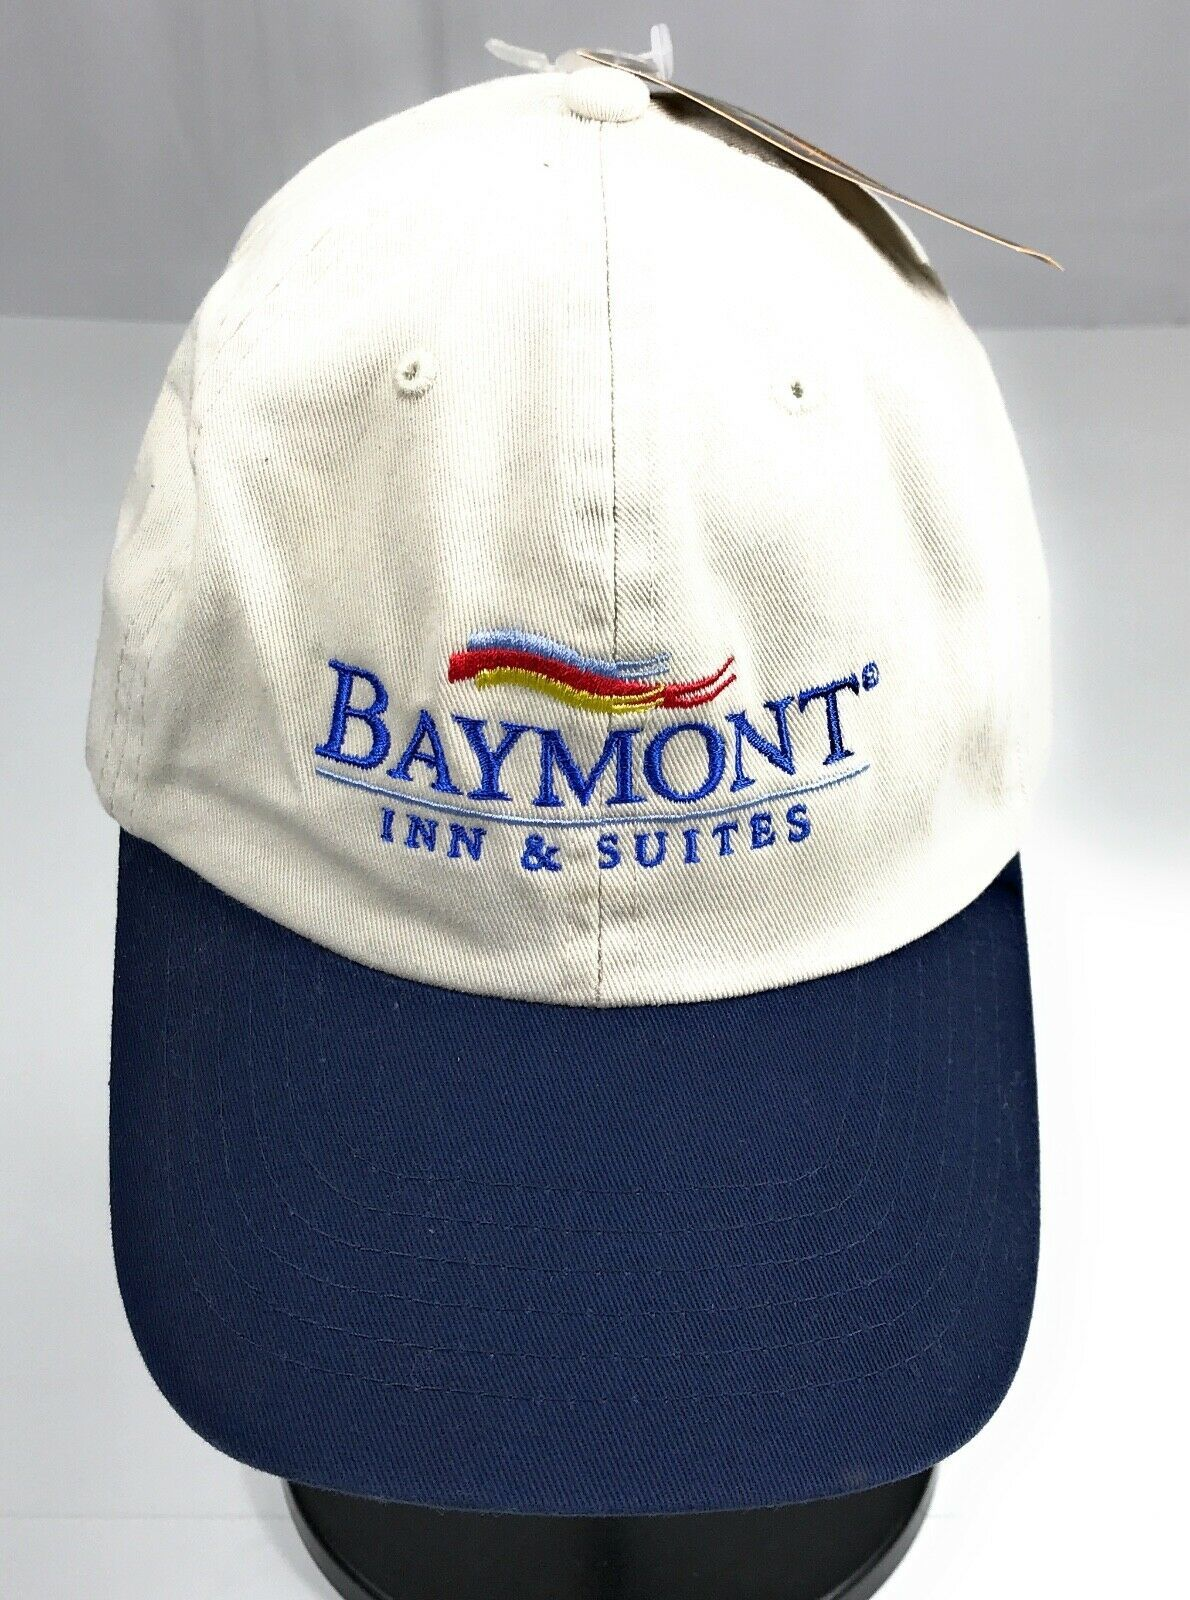 NWT Baymont Inn Suites Strapback Adjustable Cotton Khaki Navy Baseball Cap Hat